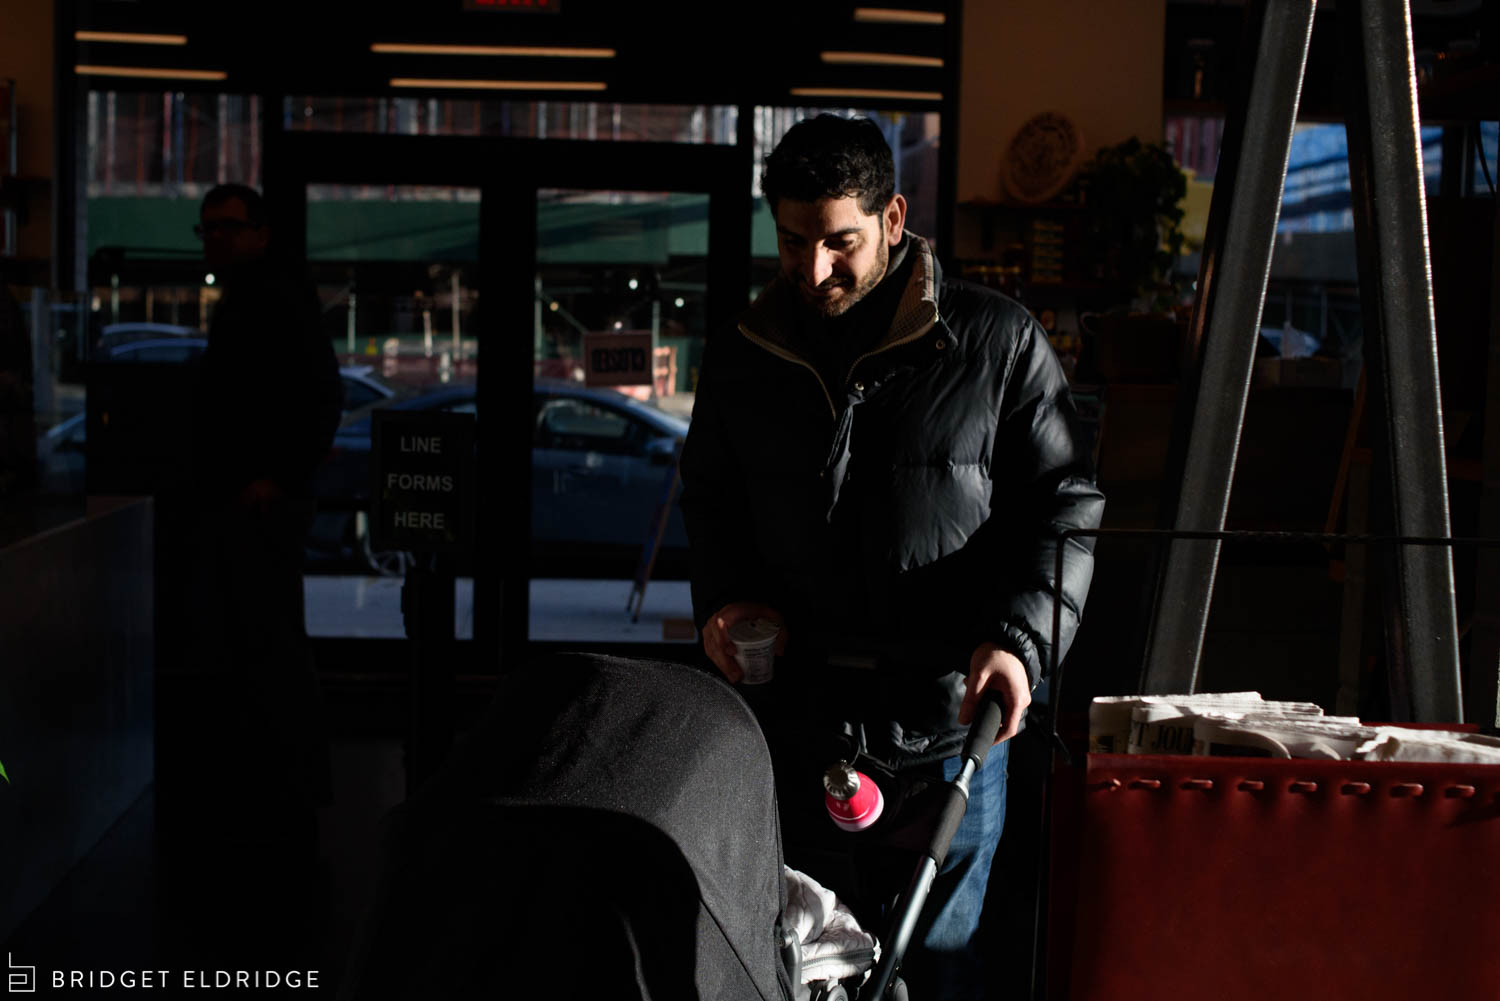 dad pushes the stroller into a coffee shop